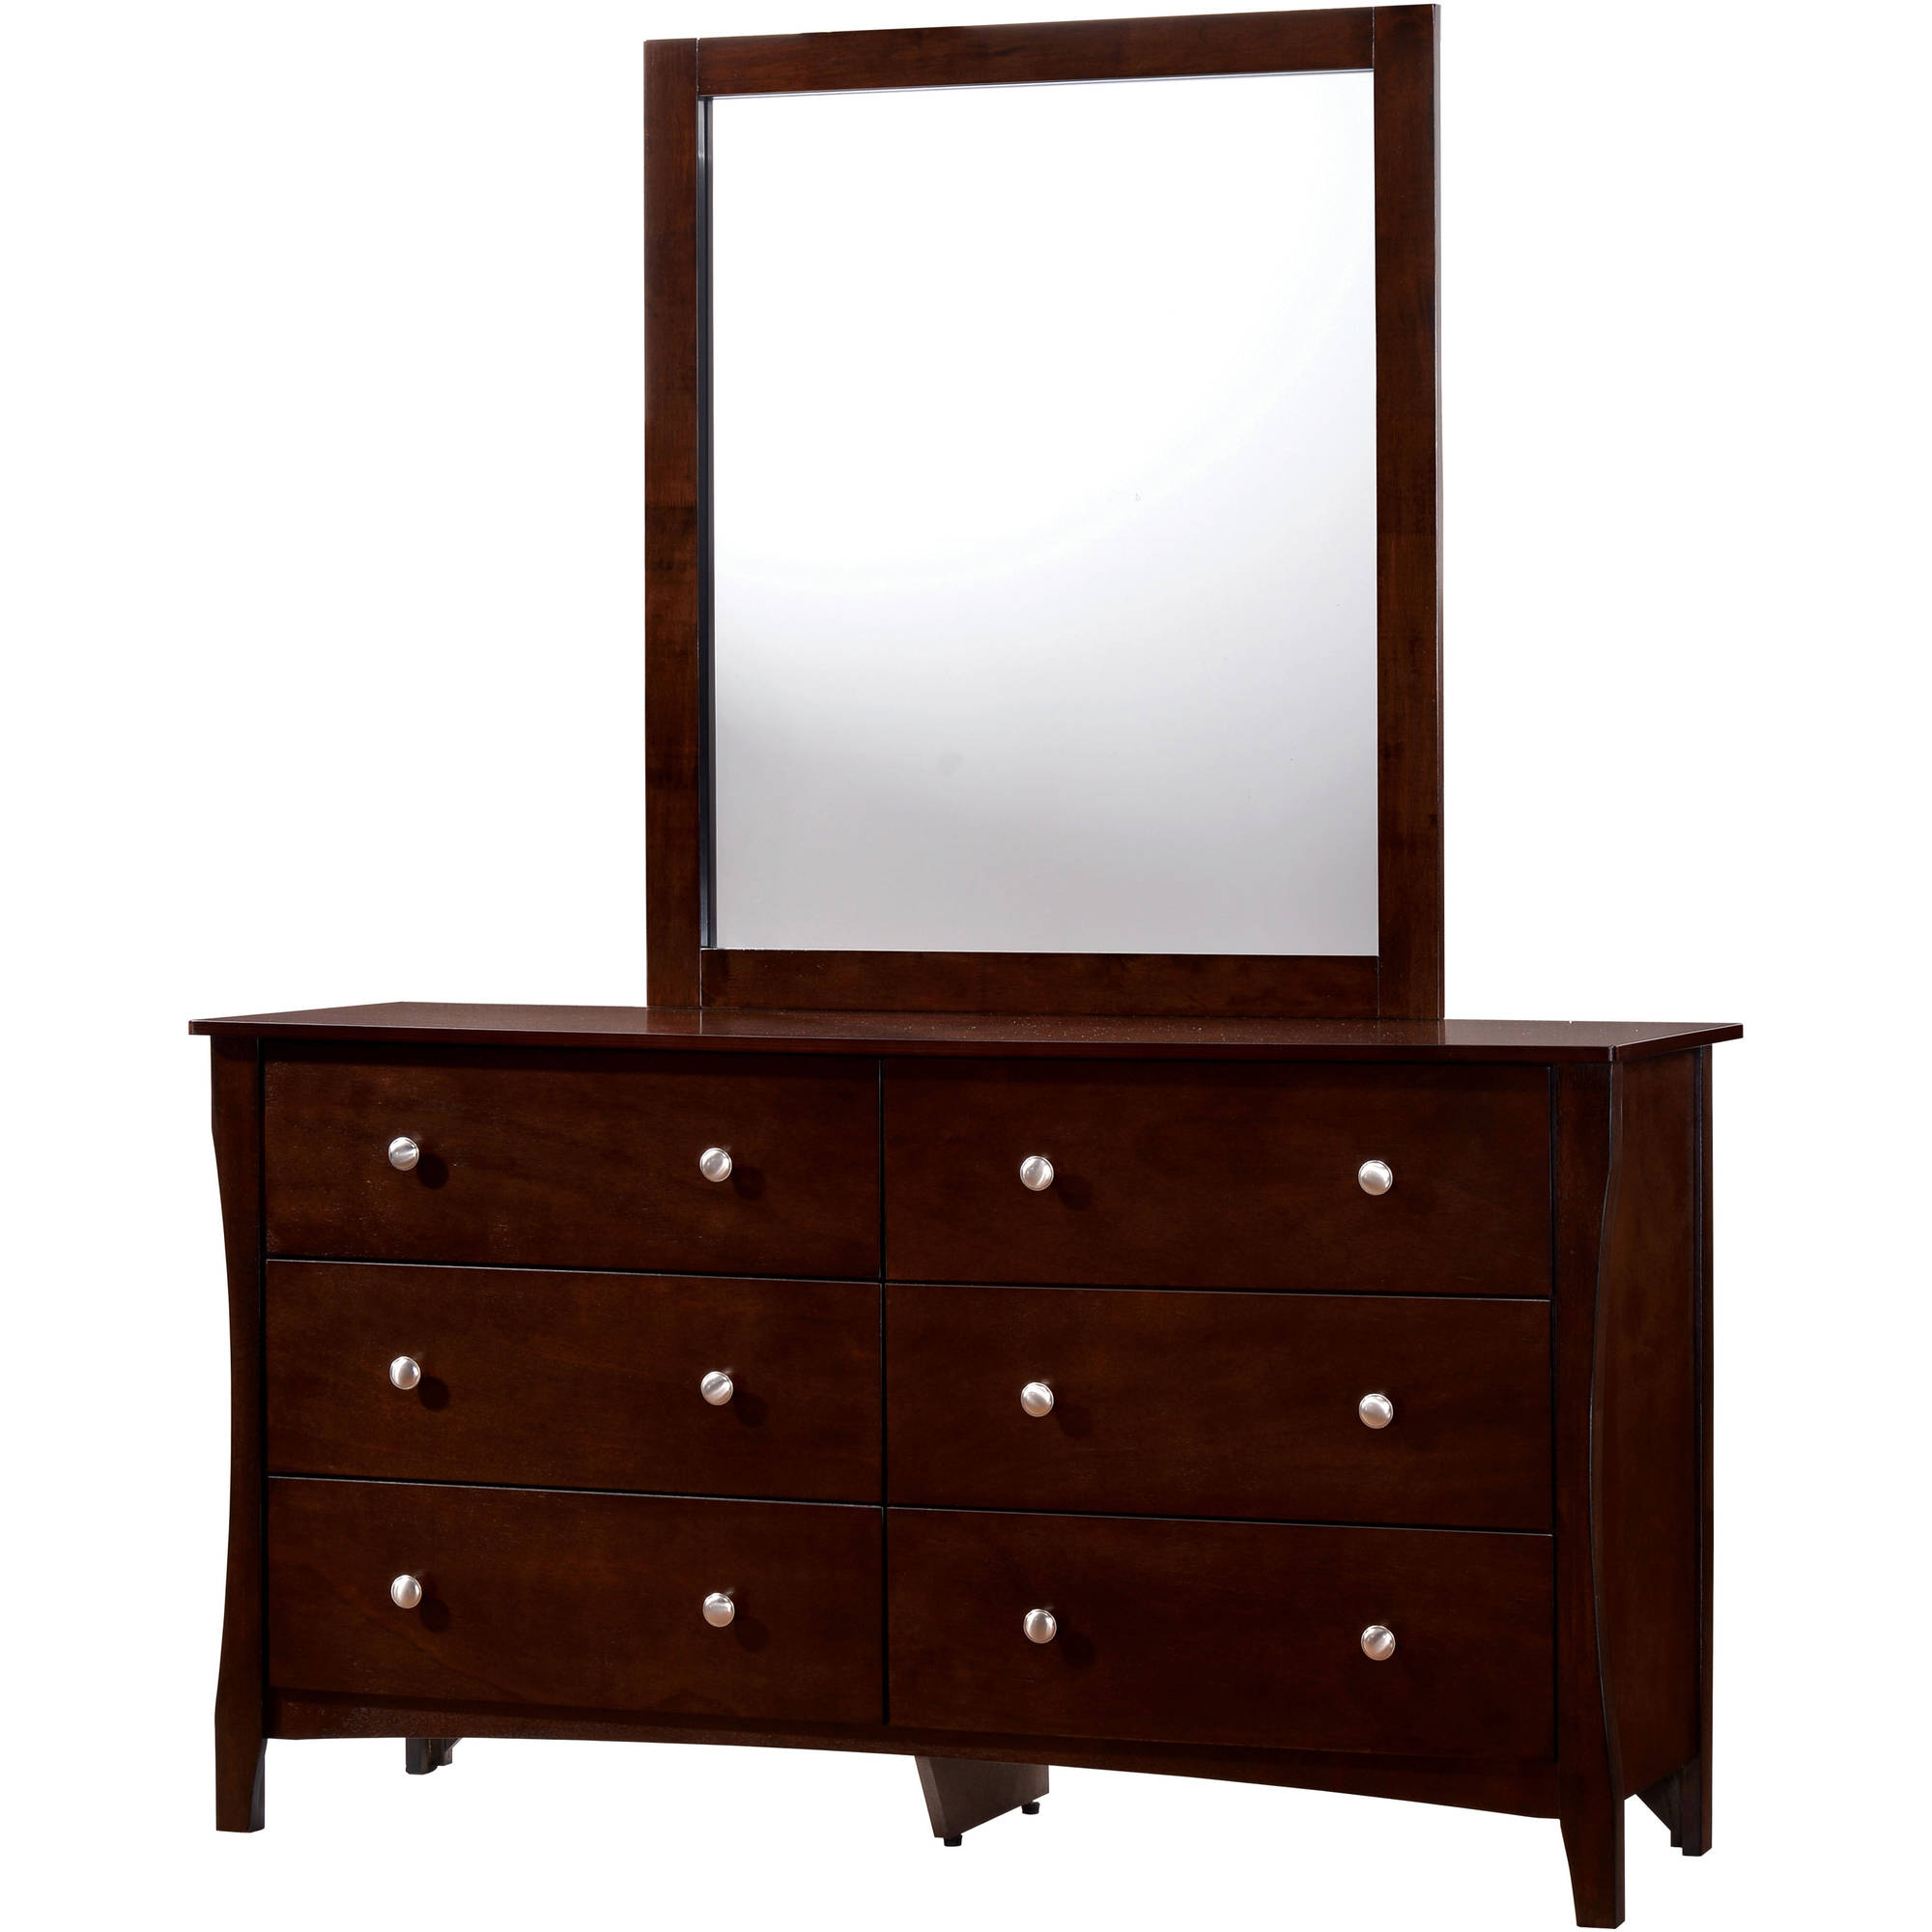 Furniture of America Areena Dresser and Mirror Set, Brown Cherry